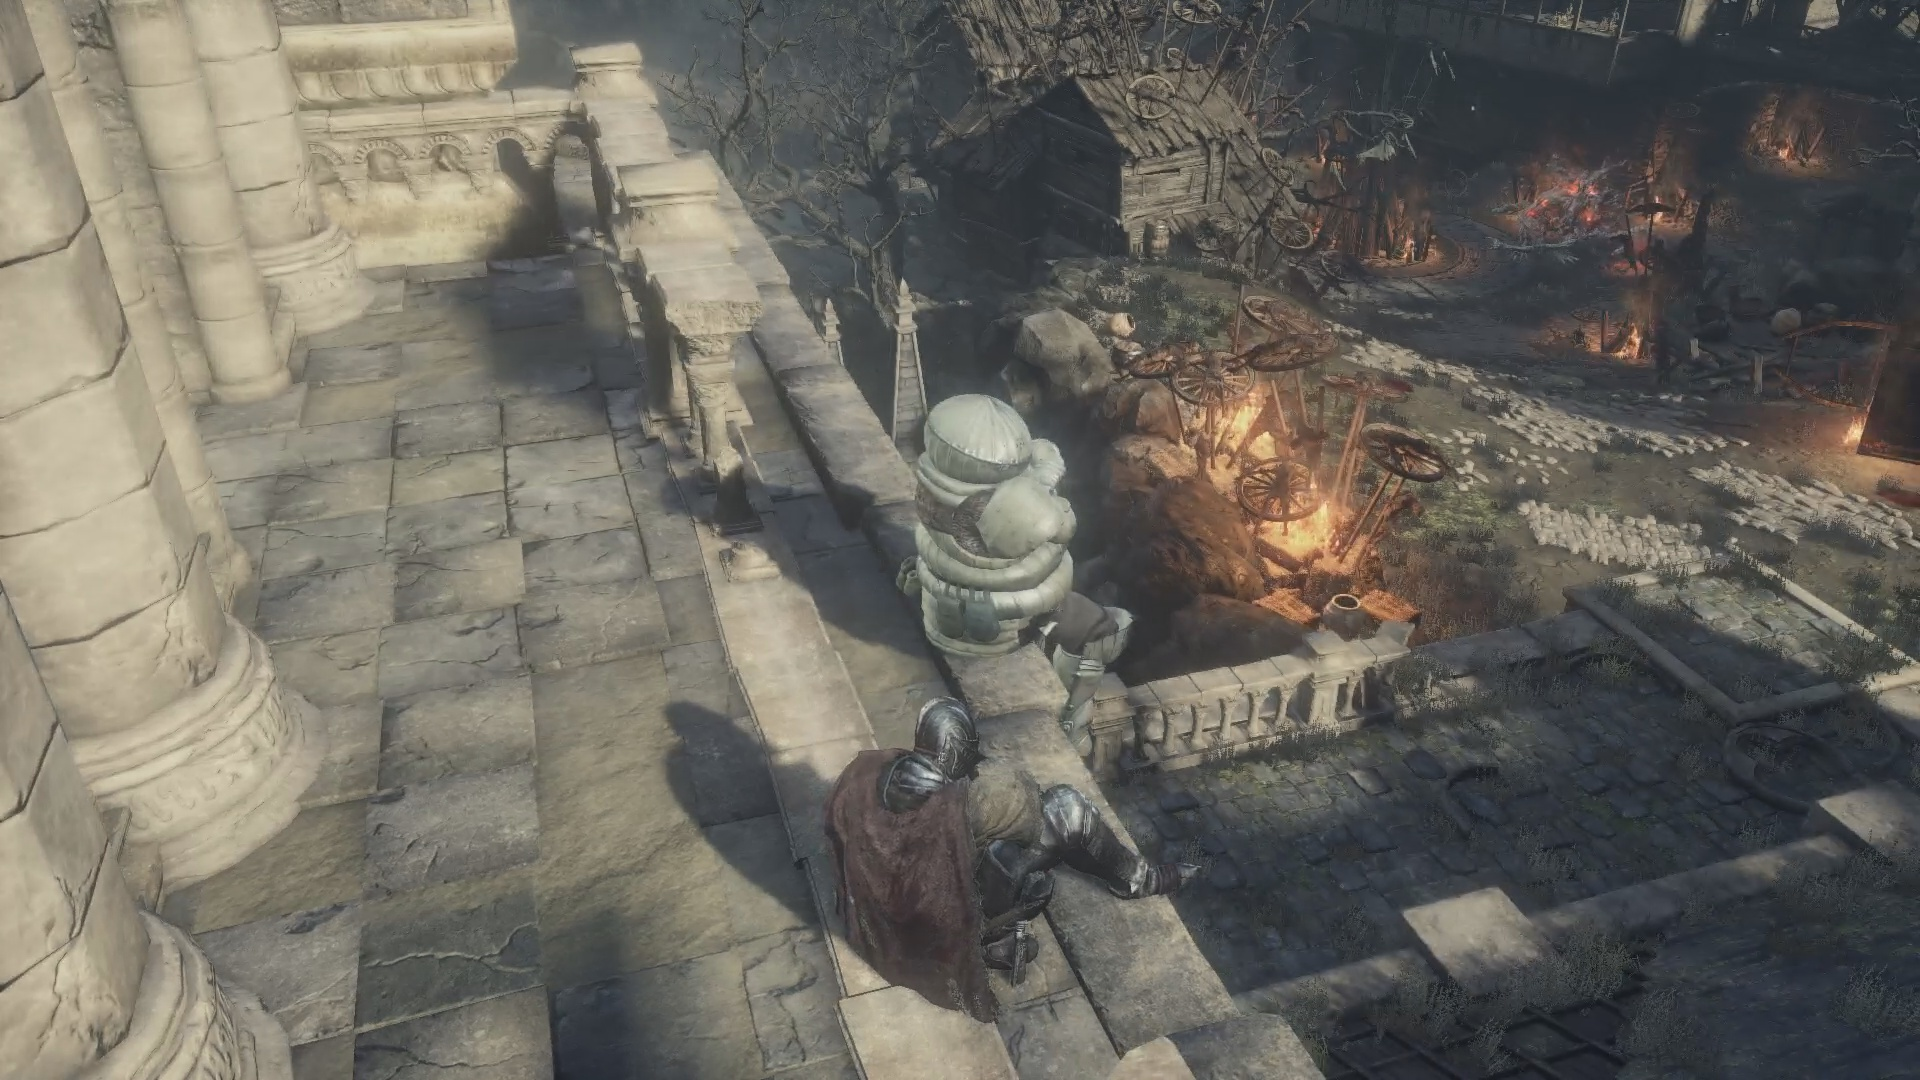 Dark Souls 3: Find Siegward and Defeat the Fire Demon | USgamer